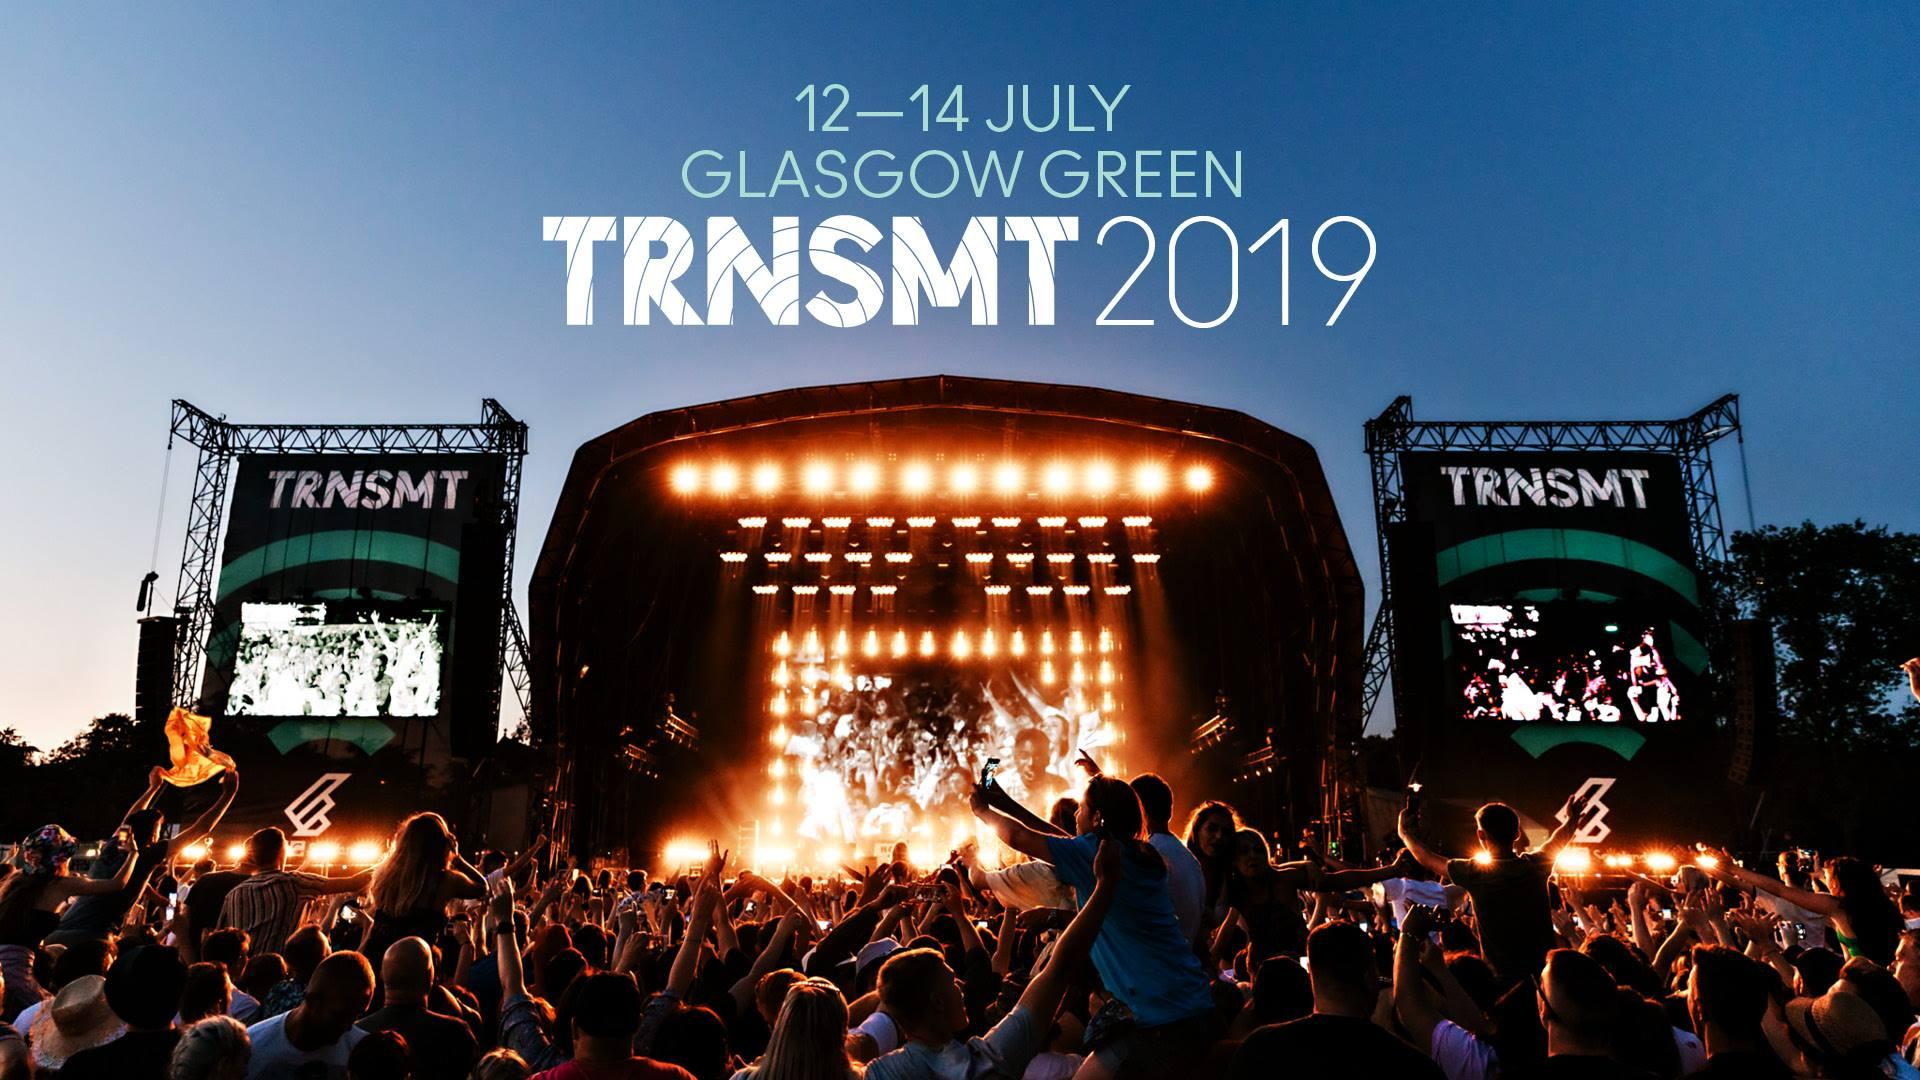 Buy Tickets For Trnsmt Festival 2019 At Glasgow Green On